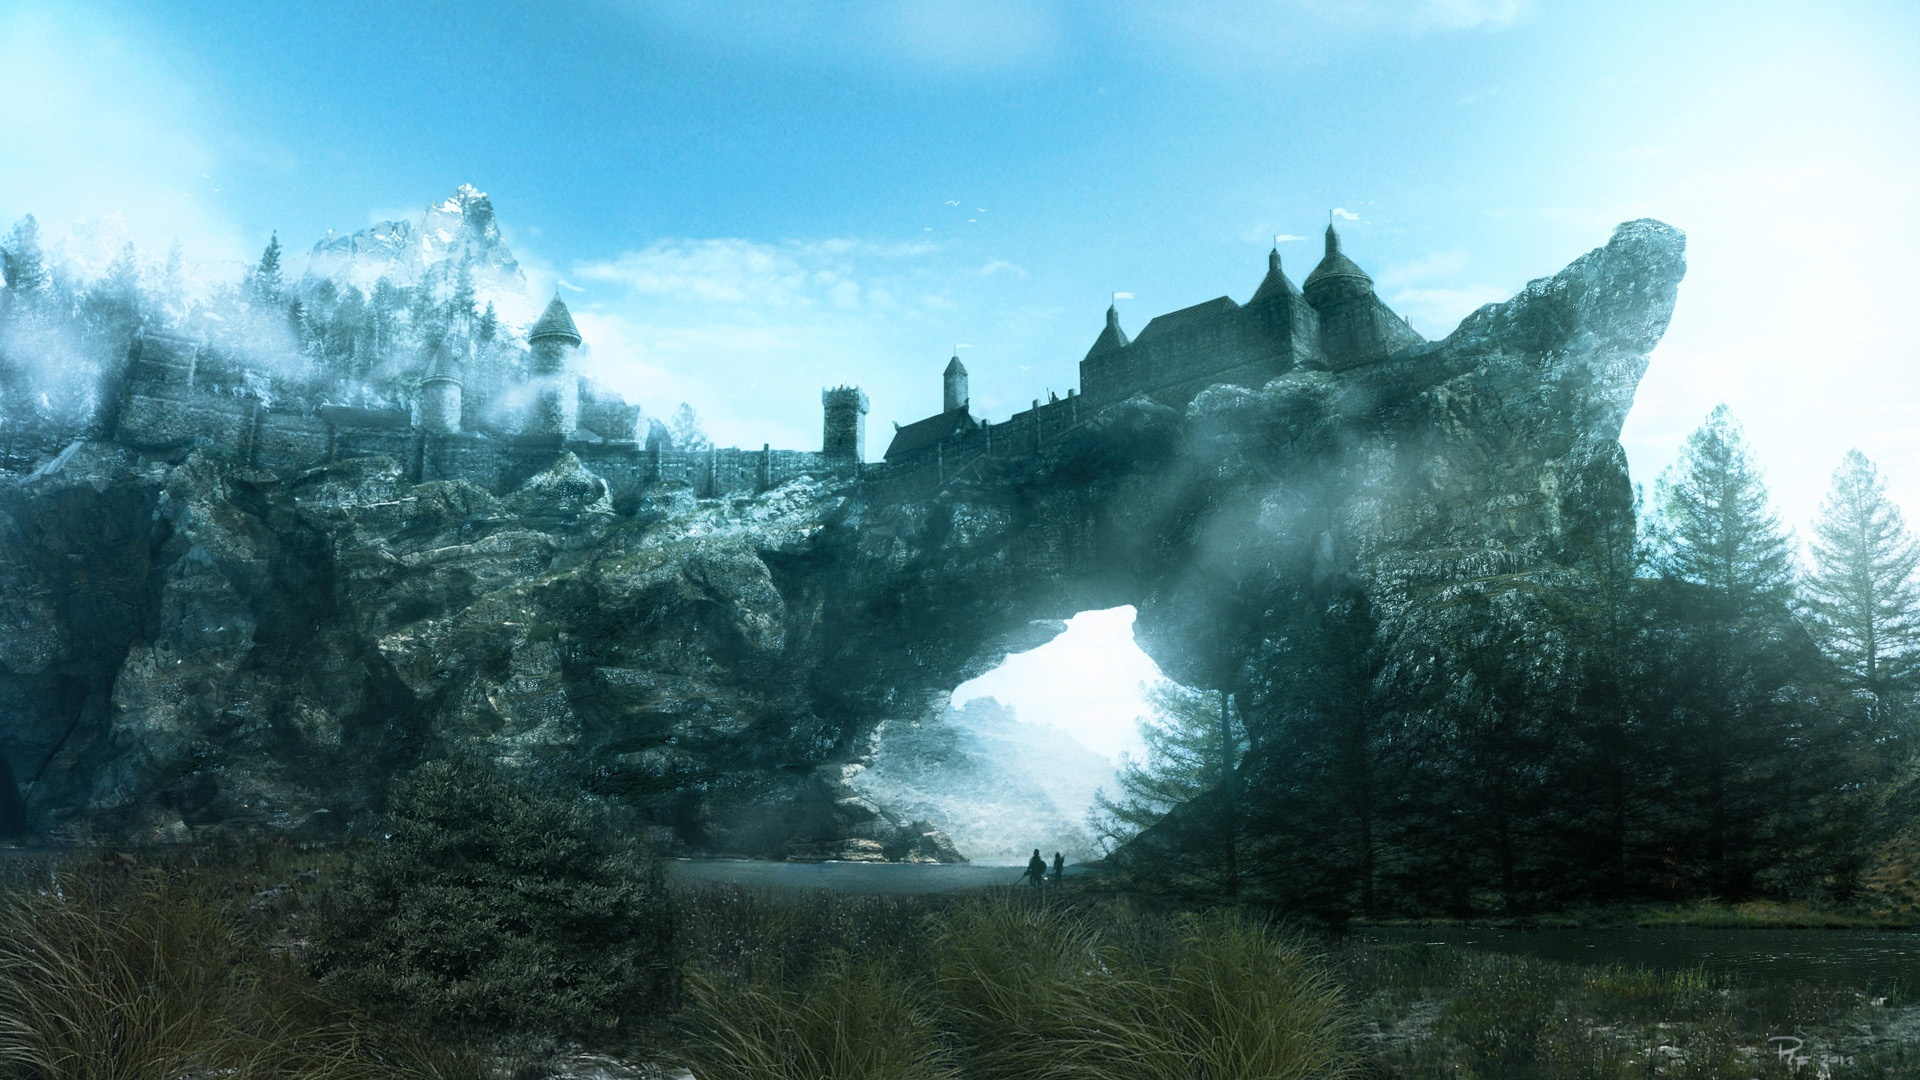 Wallpaper The Elder Scrolls V: Skyrim HD game 1920x1080 Full HD 2K